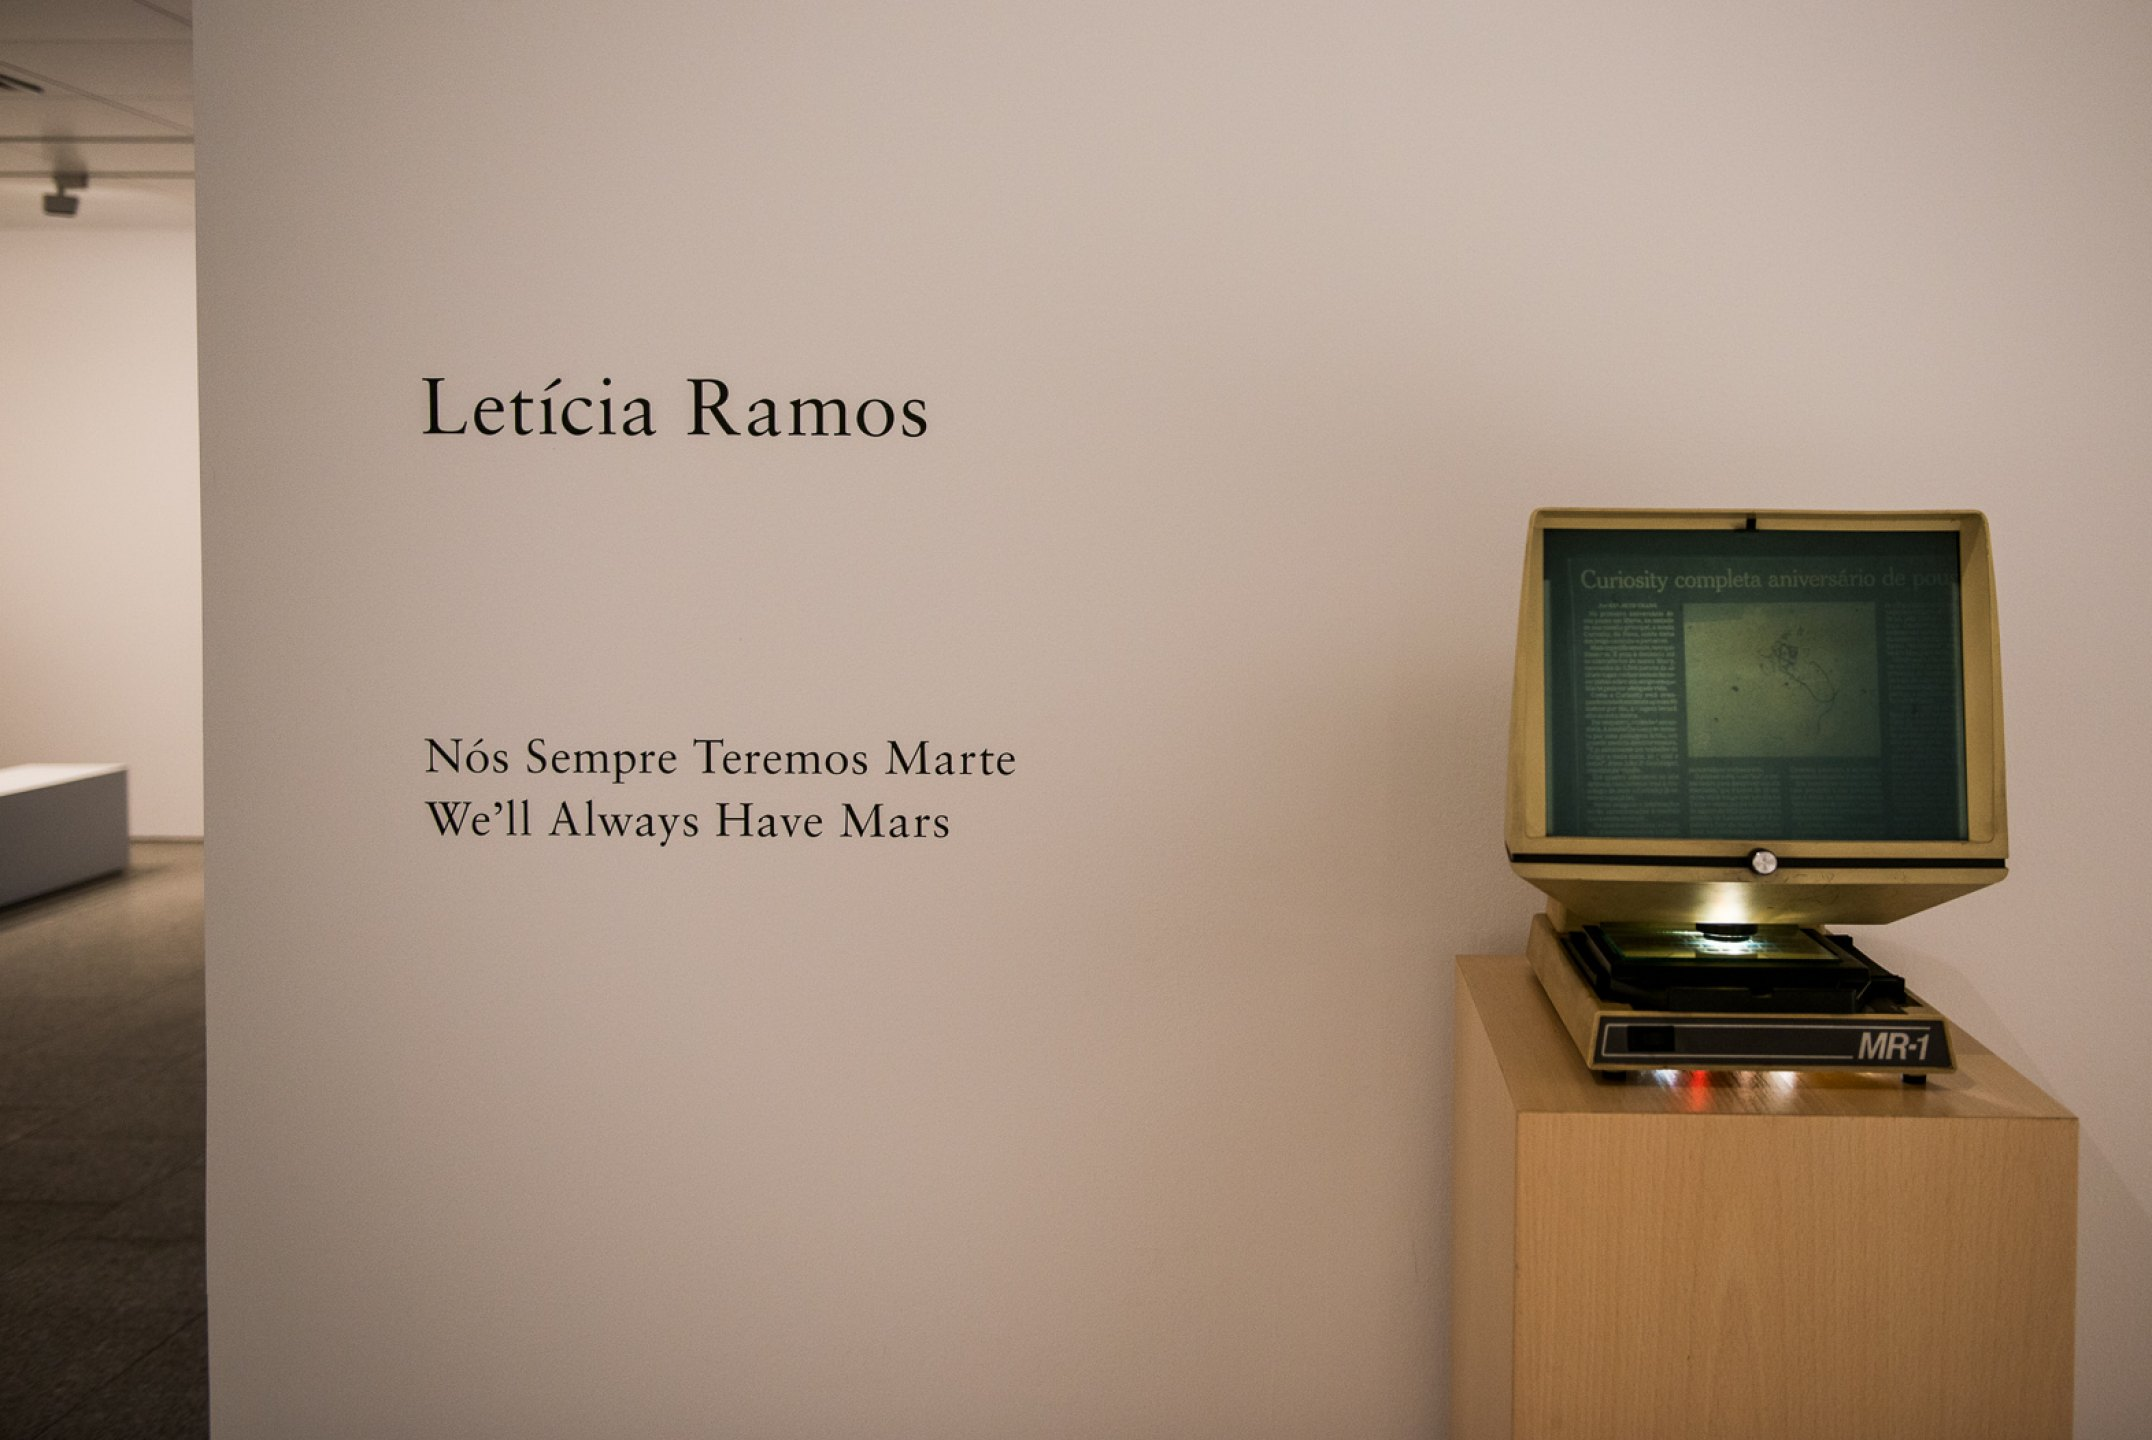 Leticia Ramos, <em>Novo Banco Photo</em>, Instituto Tomie Ohtake, São Paulo, 2014 - Mendes Wood DM